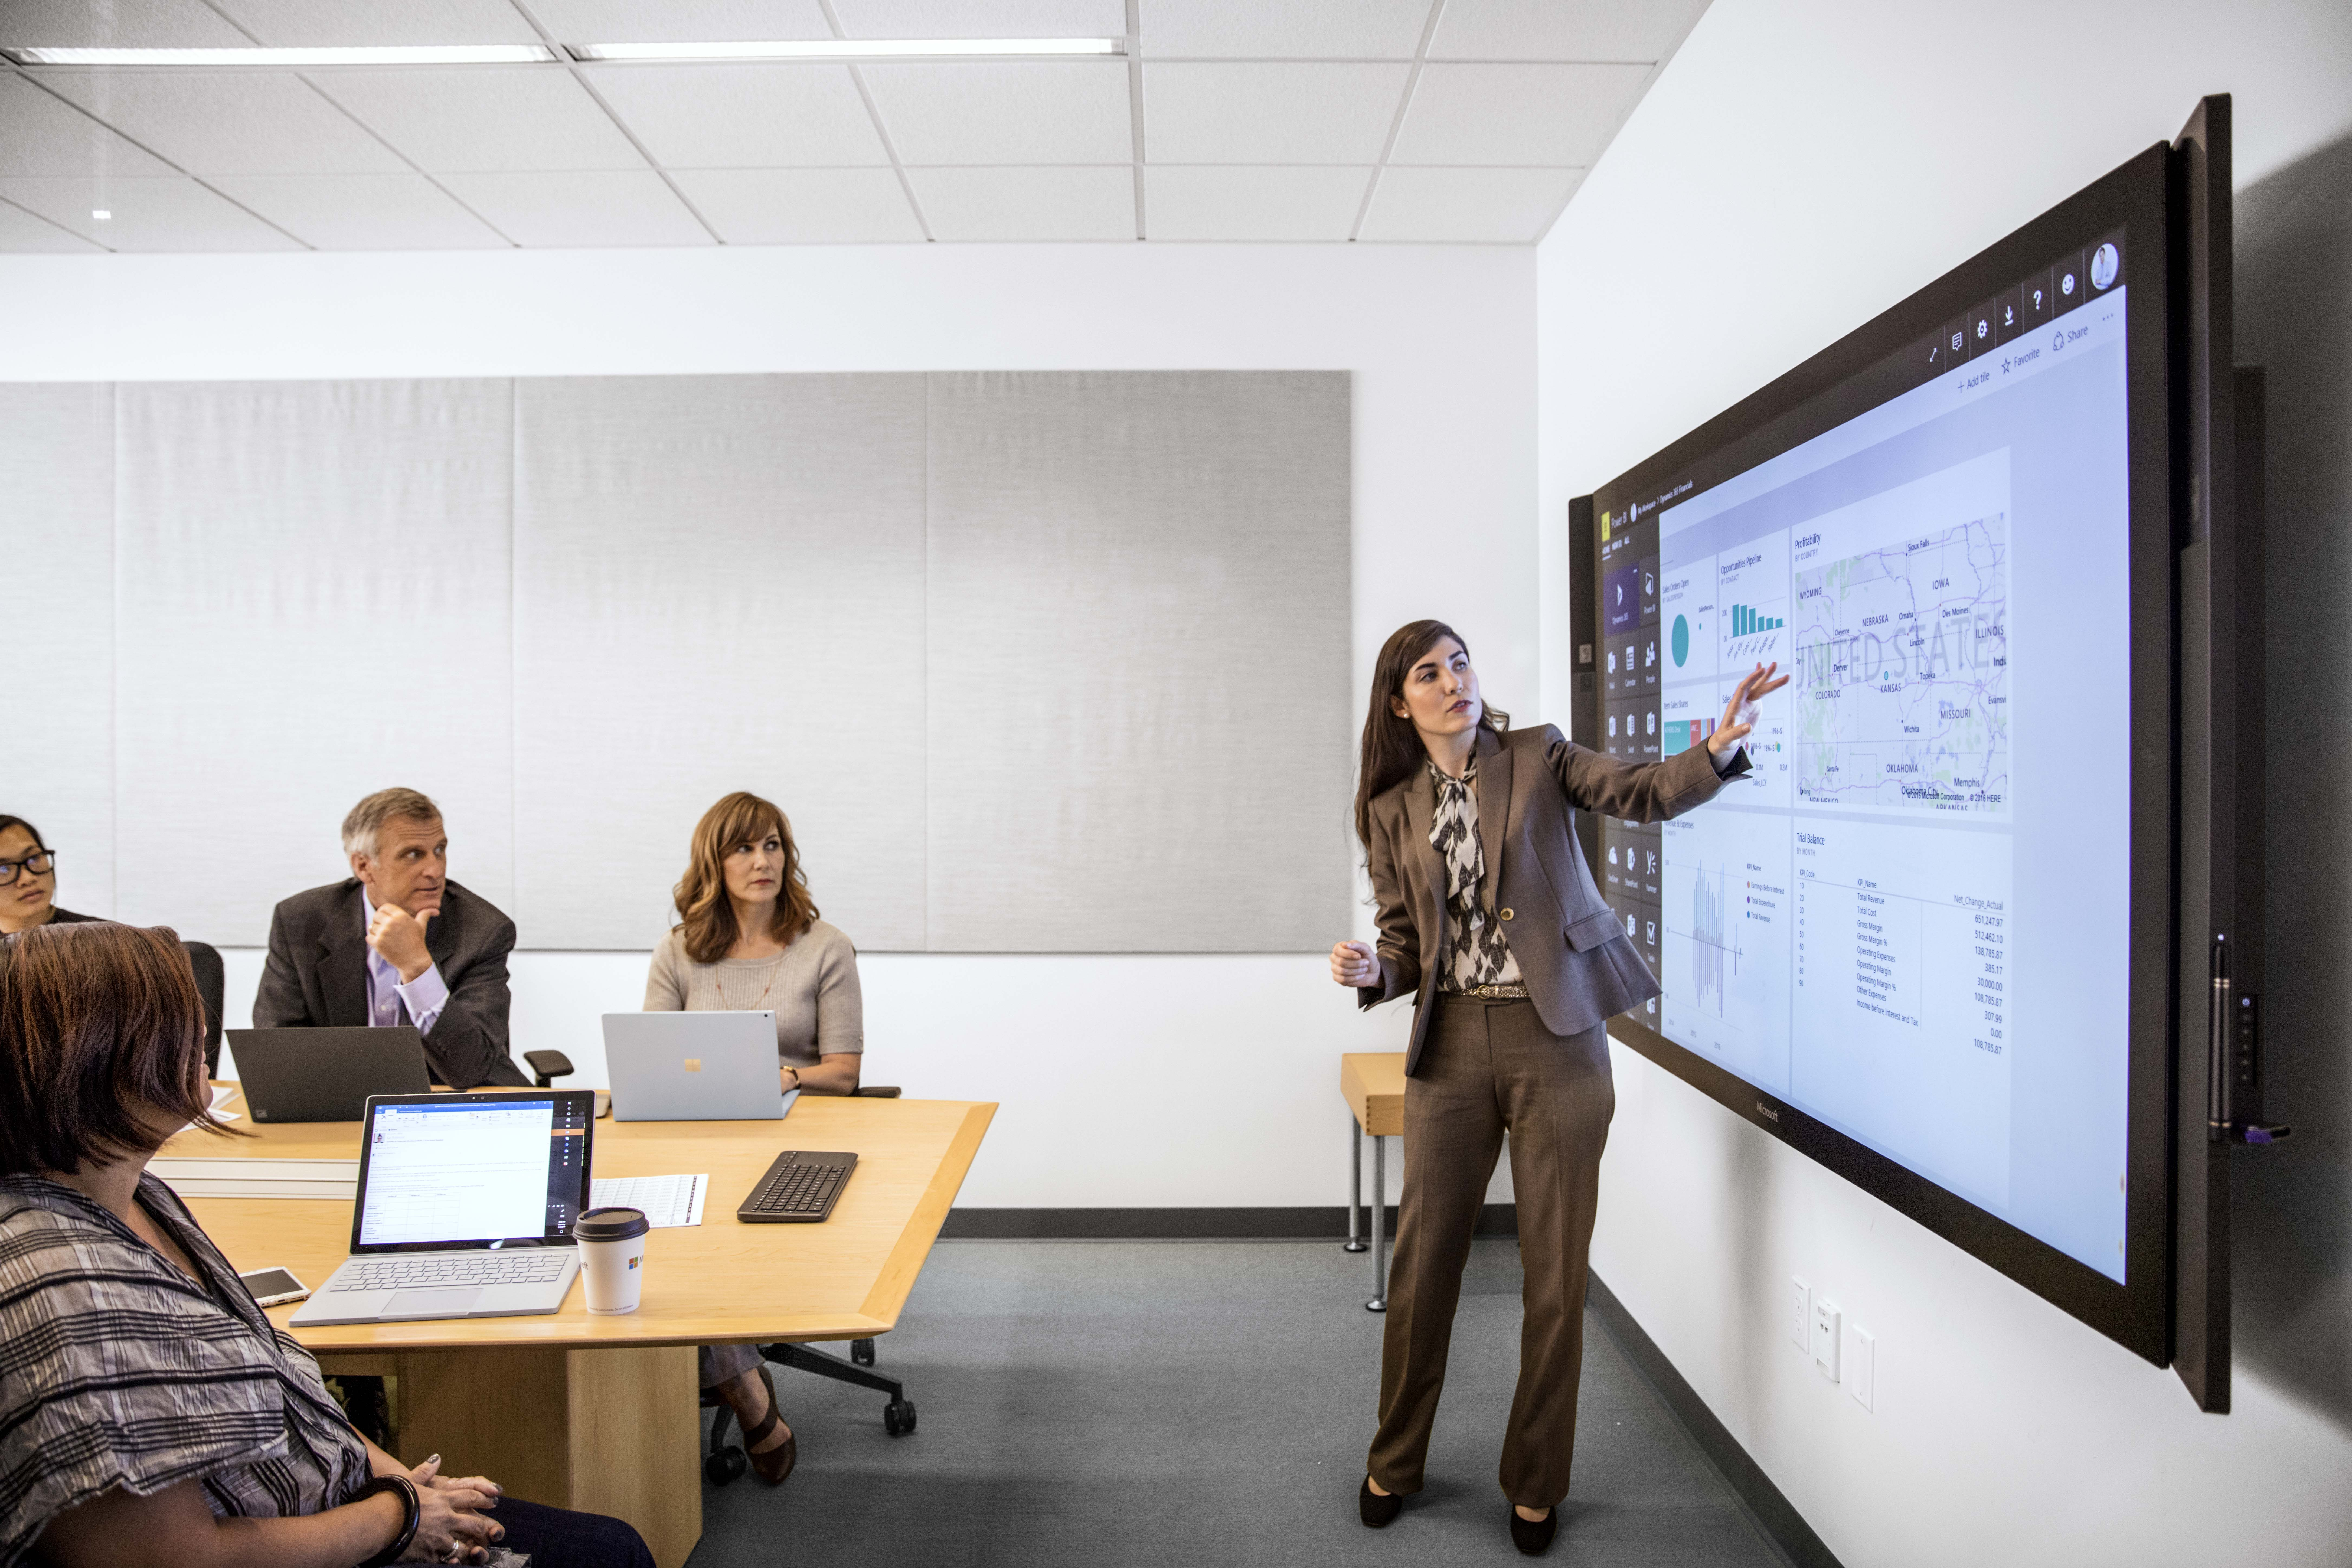 Female businesswoman in suit giving presentation in office conference room. She is pointing at a large monitor screen, which displays a map of the United States, pie charts, and graphs.